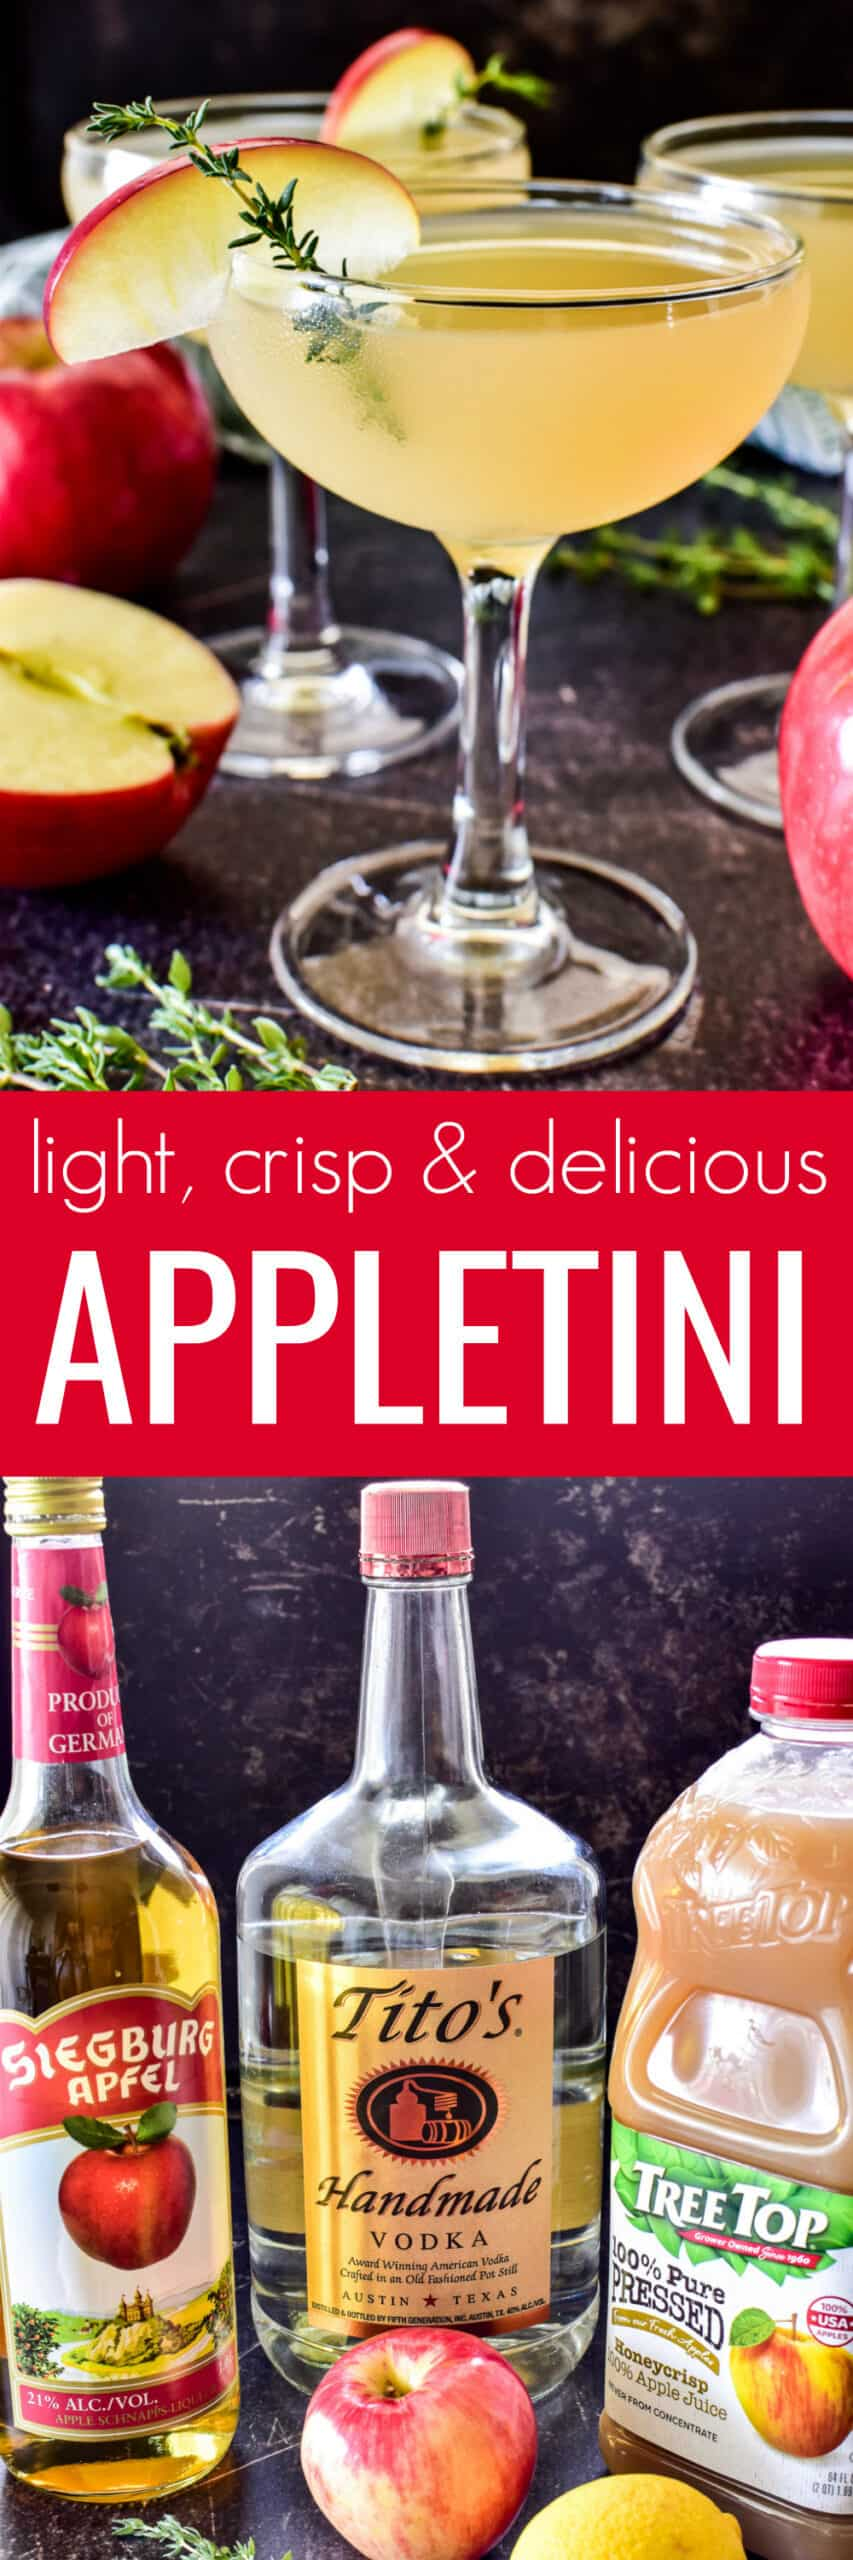 Collage image of Appletini and ingredients